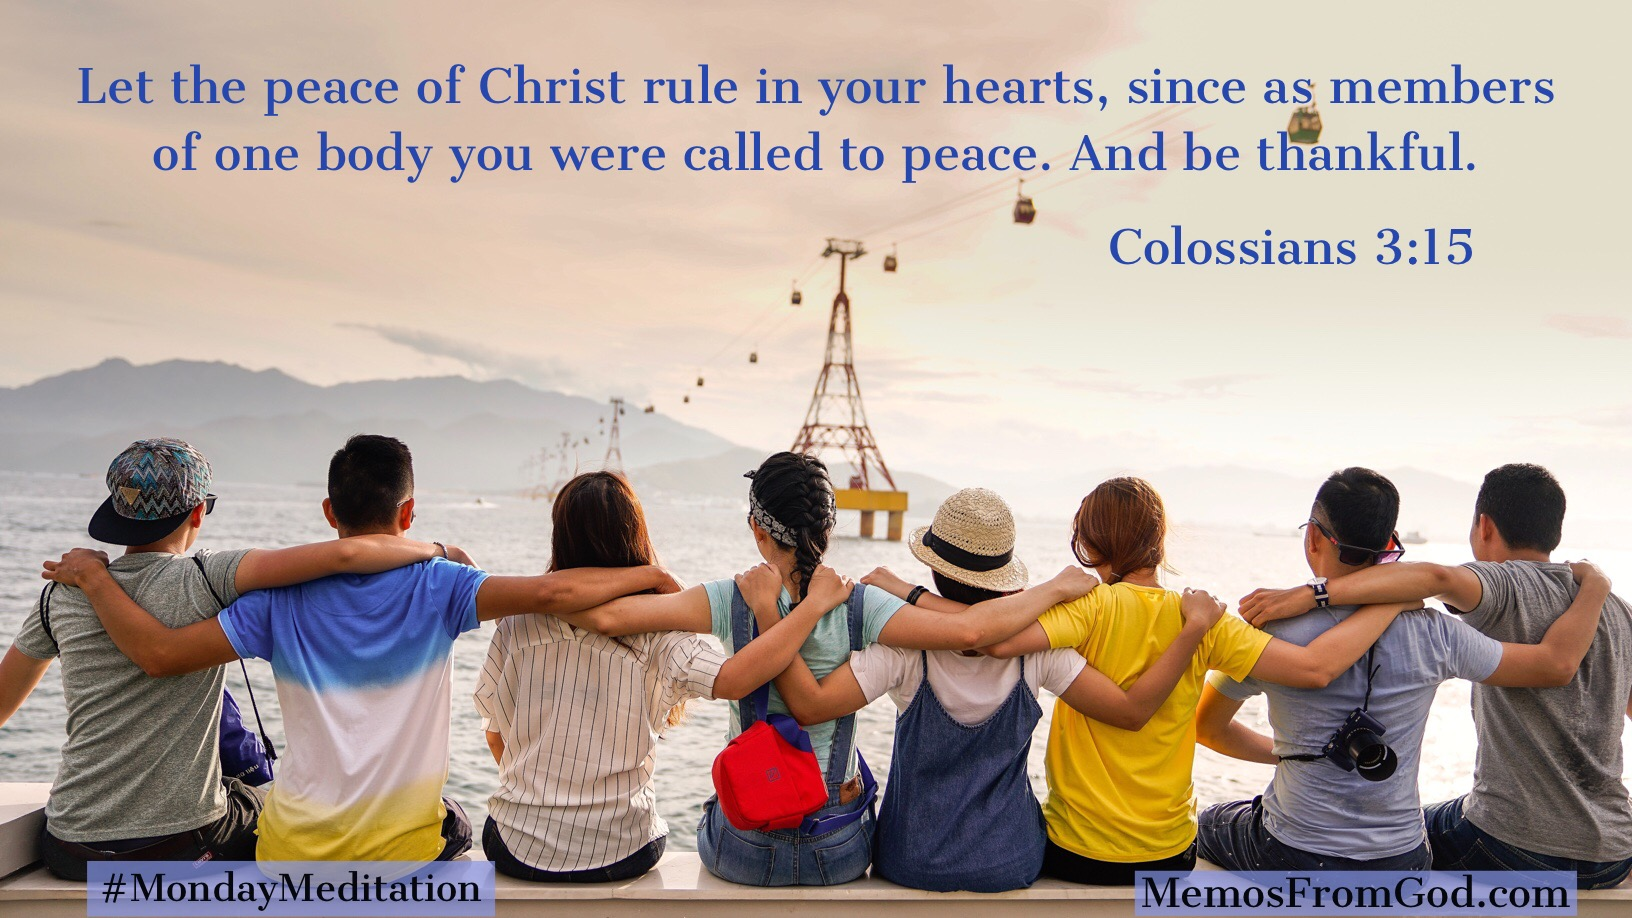 Let the peace of Christ rule in your hearts, since as members of one body you were called to peace. And be thankful. Colossians 3:15